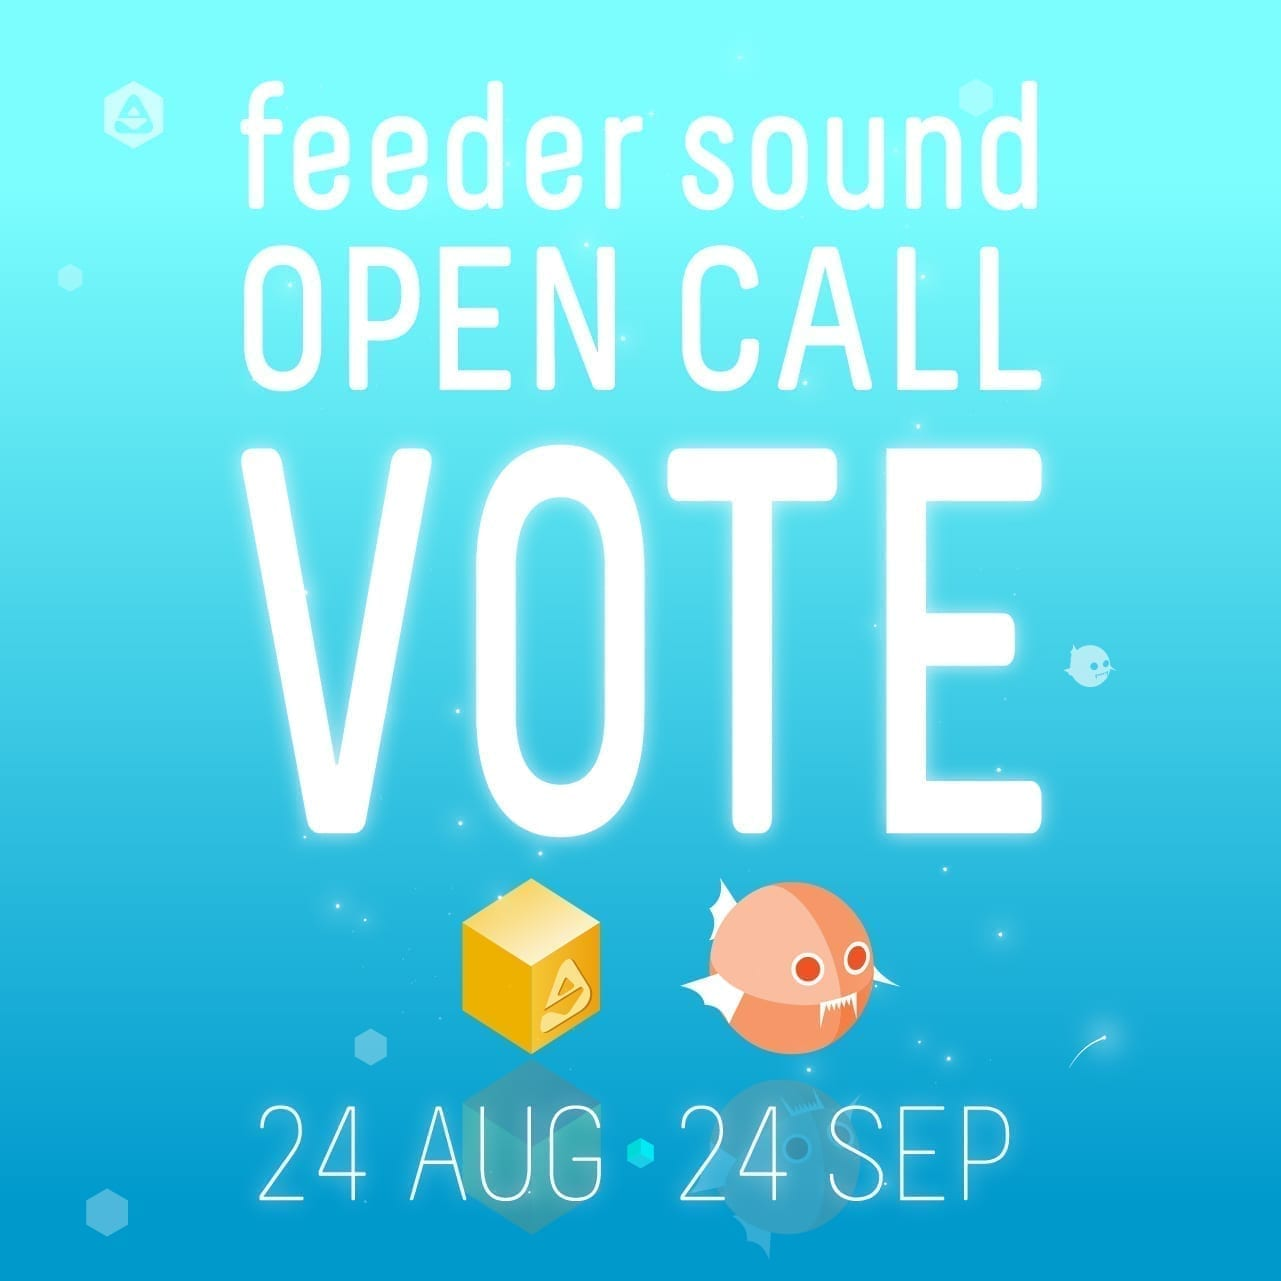 Listen to the applications received in the feeder sound OPEN CALL for DJs and producers & VOTE